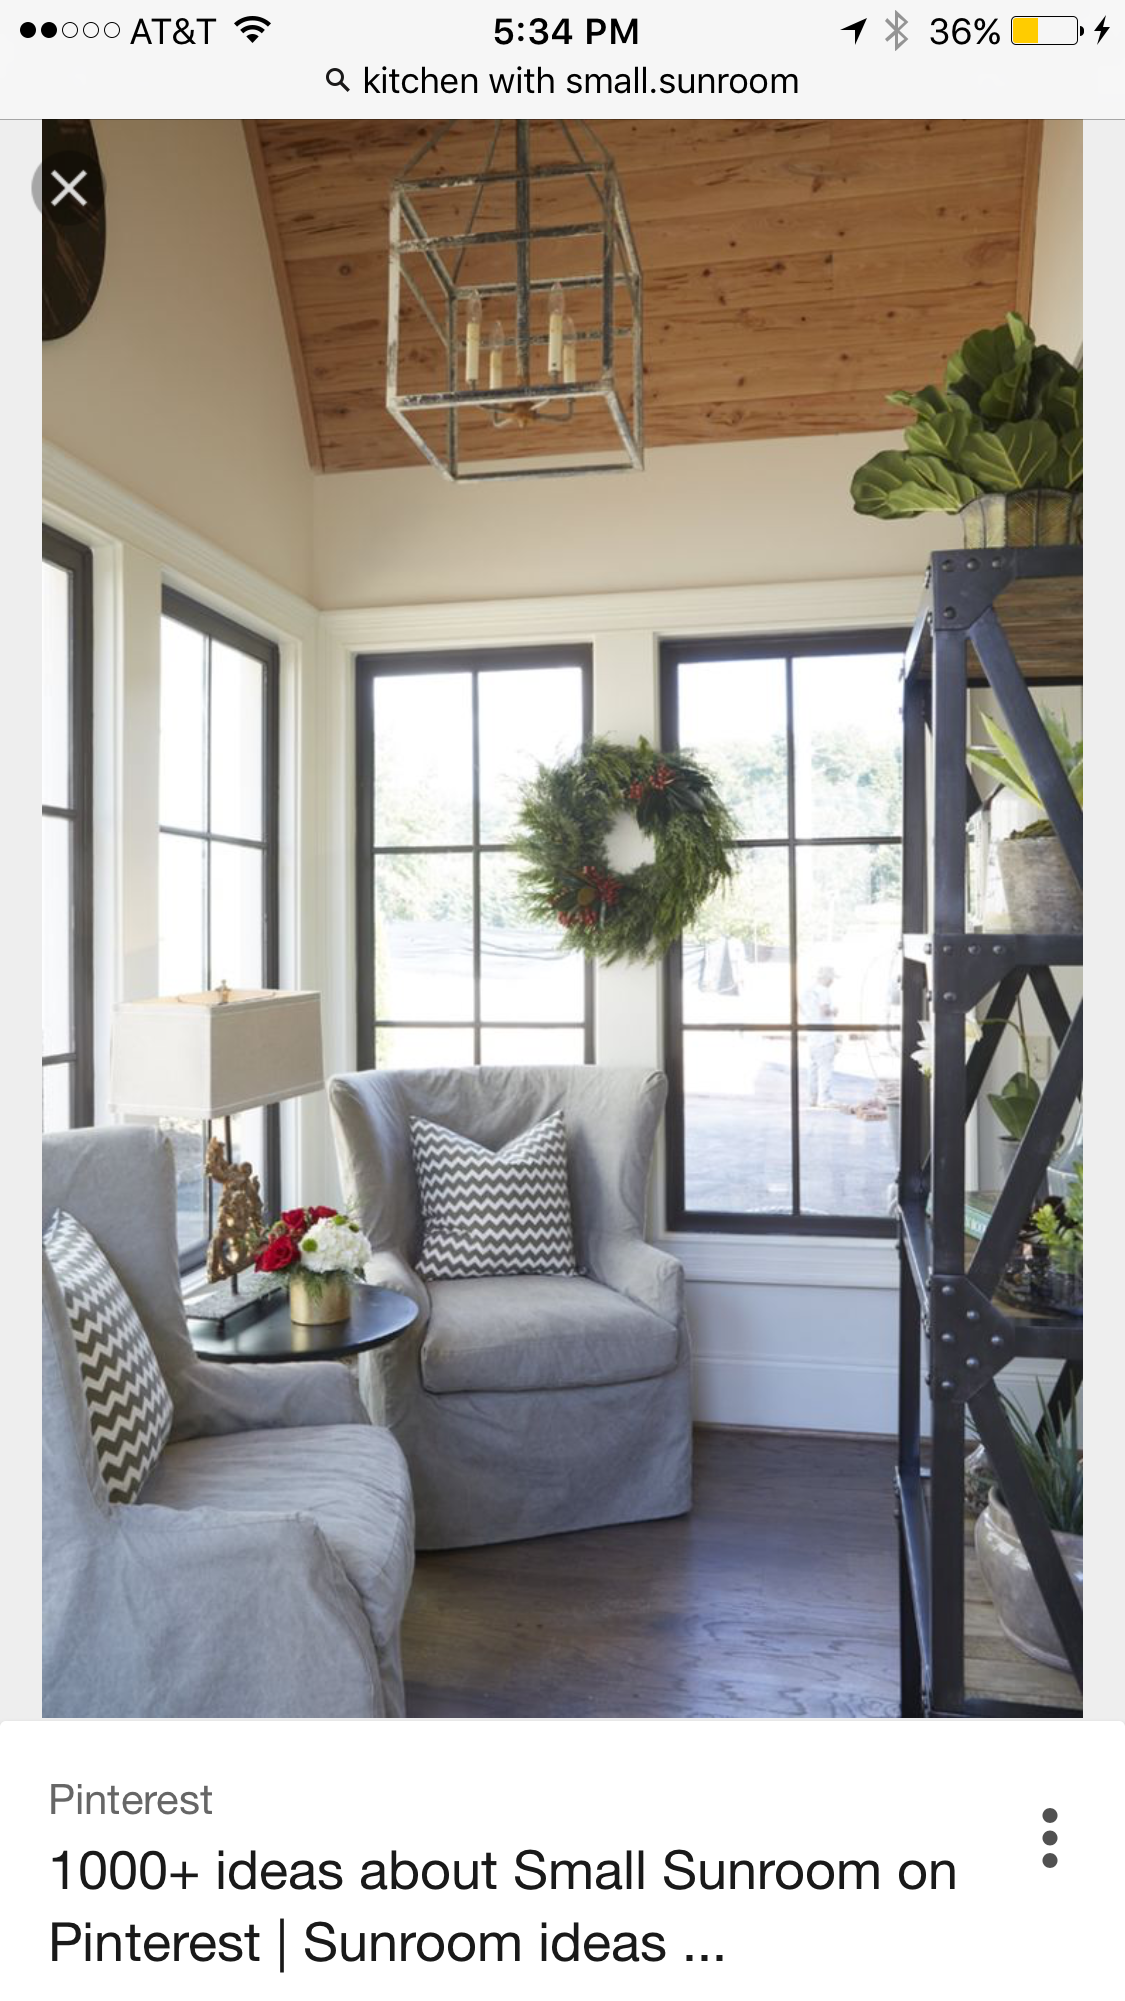 Pin by Maggie deese on Niffty ideas  Small sunroom, Sunroom